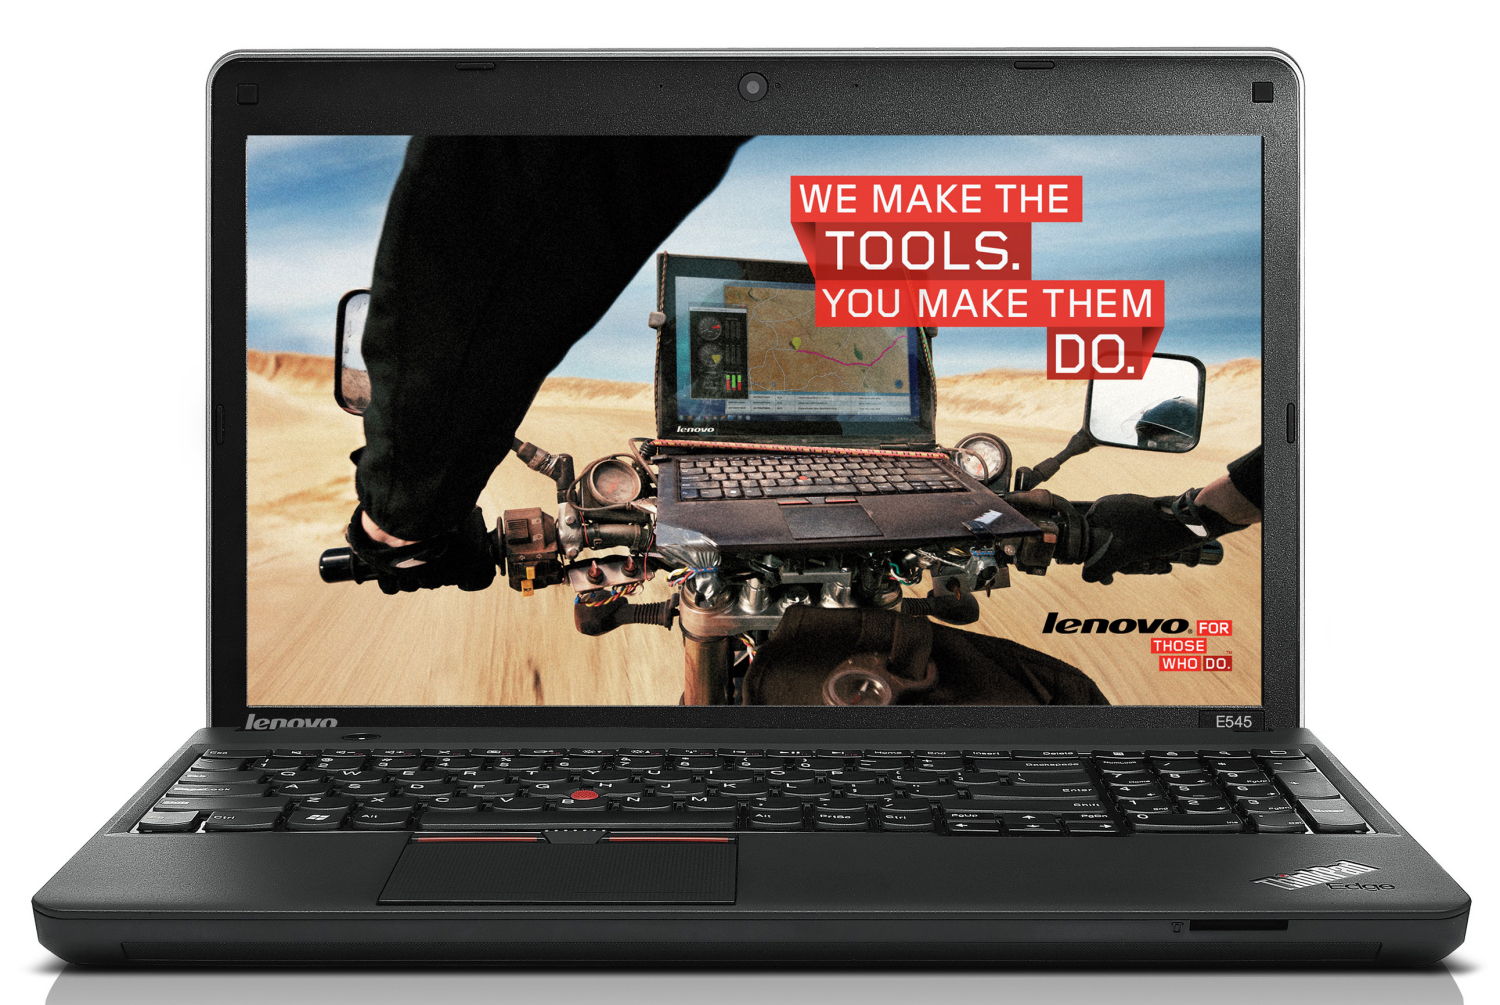 LENOVO THINKPAD EDGE E535 POWER MANAGEMENT WINDOWS 8.1 DRIVERS DOWNLOAD